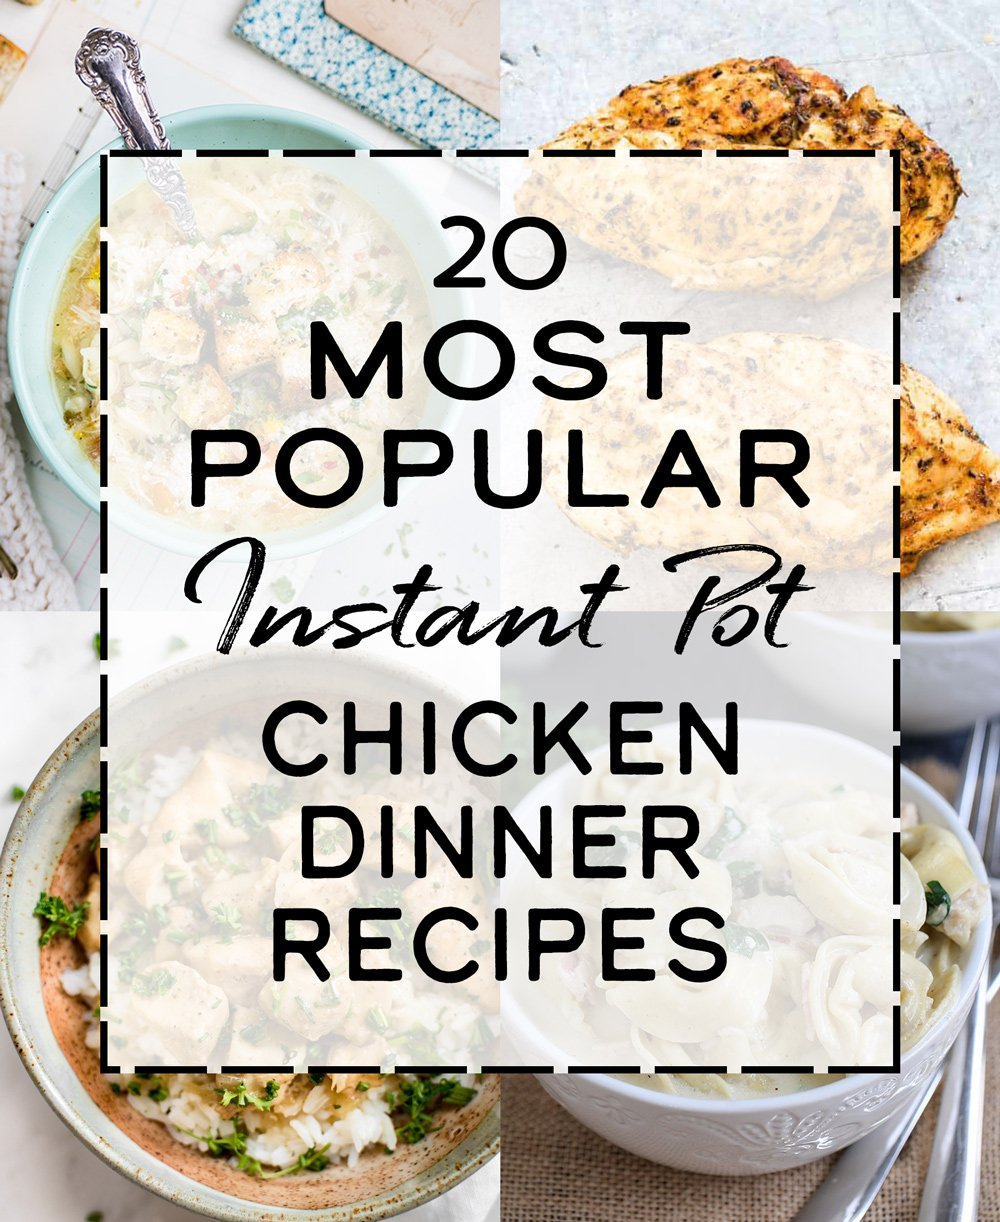 20 Most Popular Instant Pot Chicken Dinner Recipes Project Meal Plan